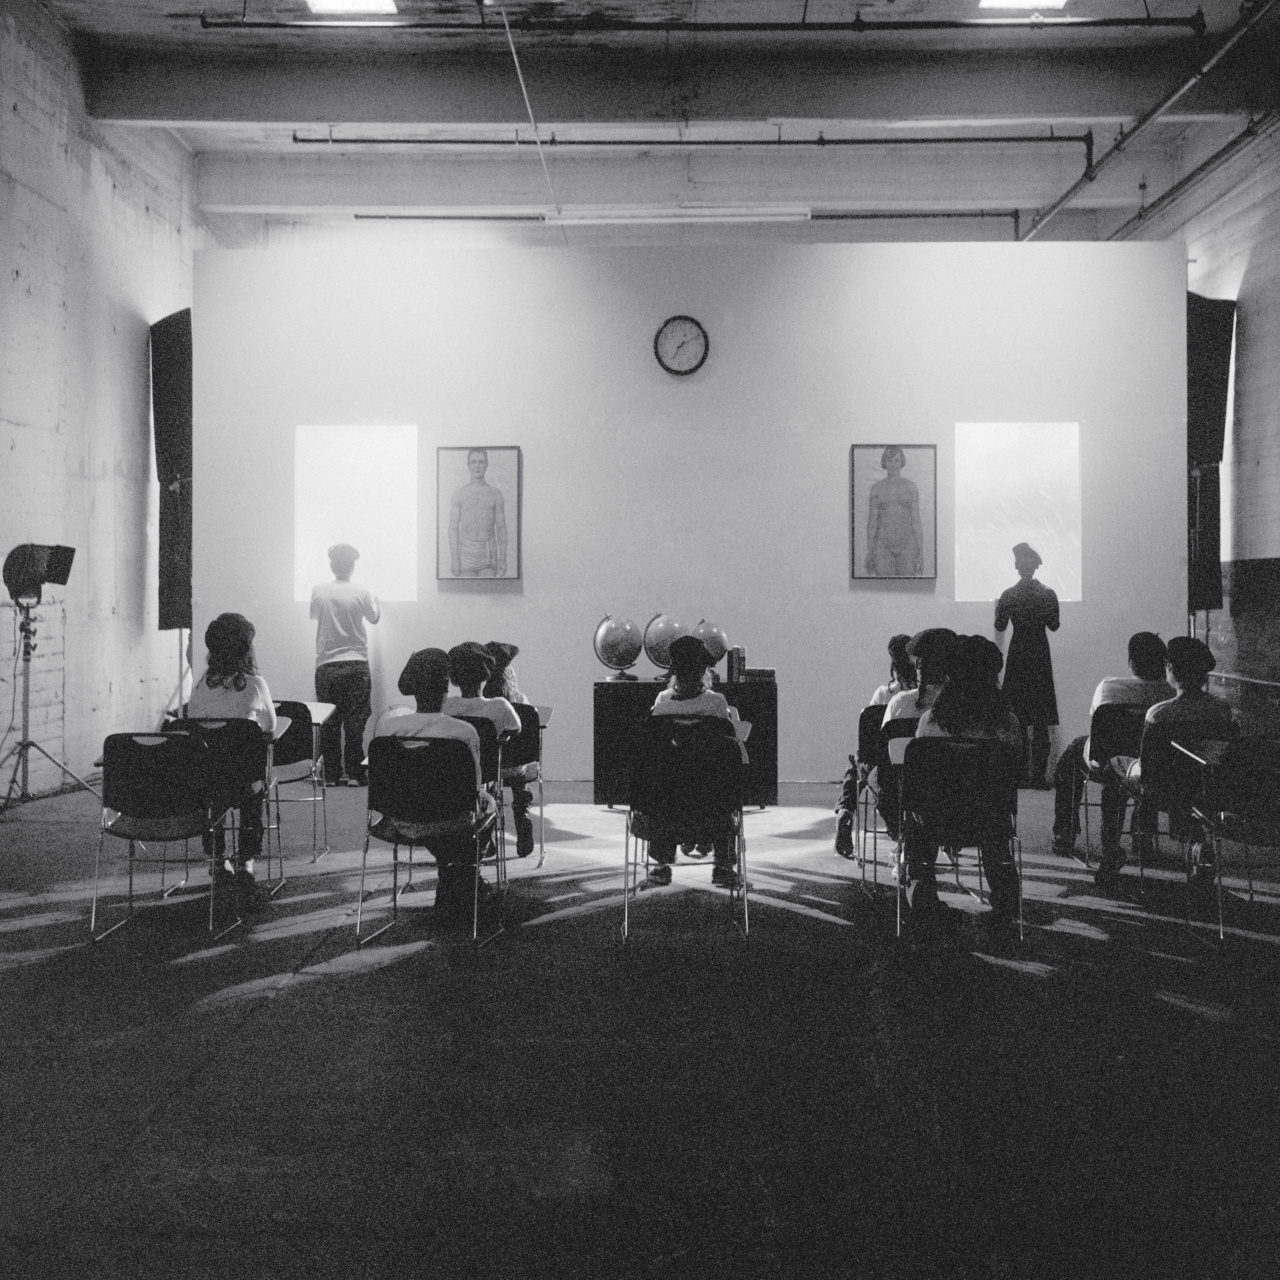 Carrie Mae Weems, A Class Ponders the Future, 2008. Photograph. Courtesy the artist and Jack Shainman Gallery, New York, NY.